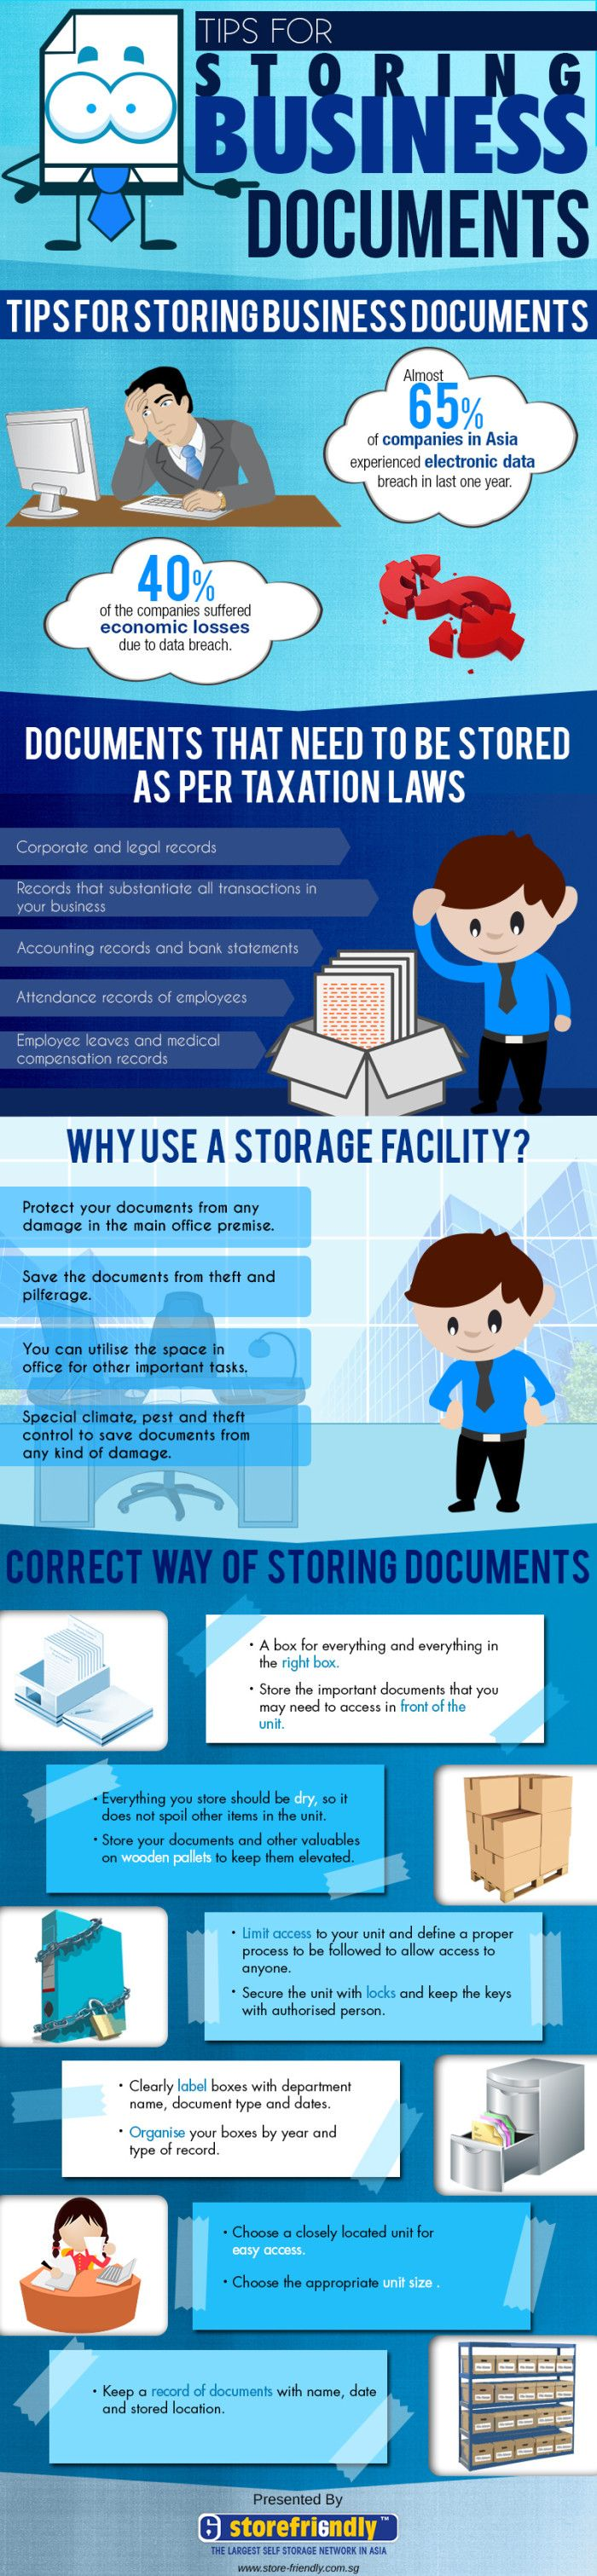 Here S An Infographic On How Self Storage Is Great For Storing Business Doents